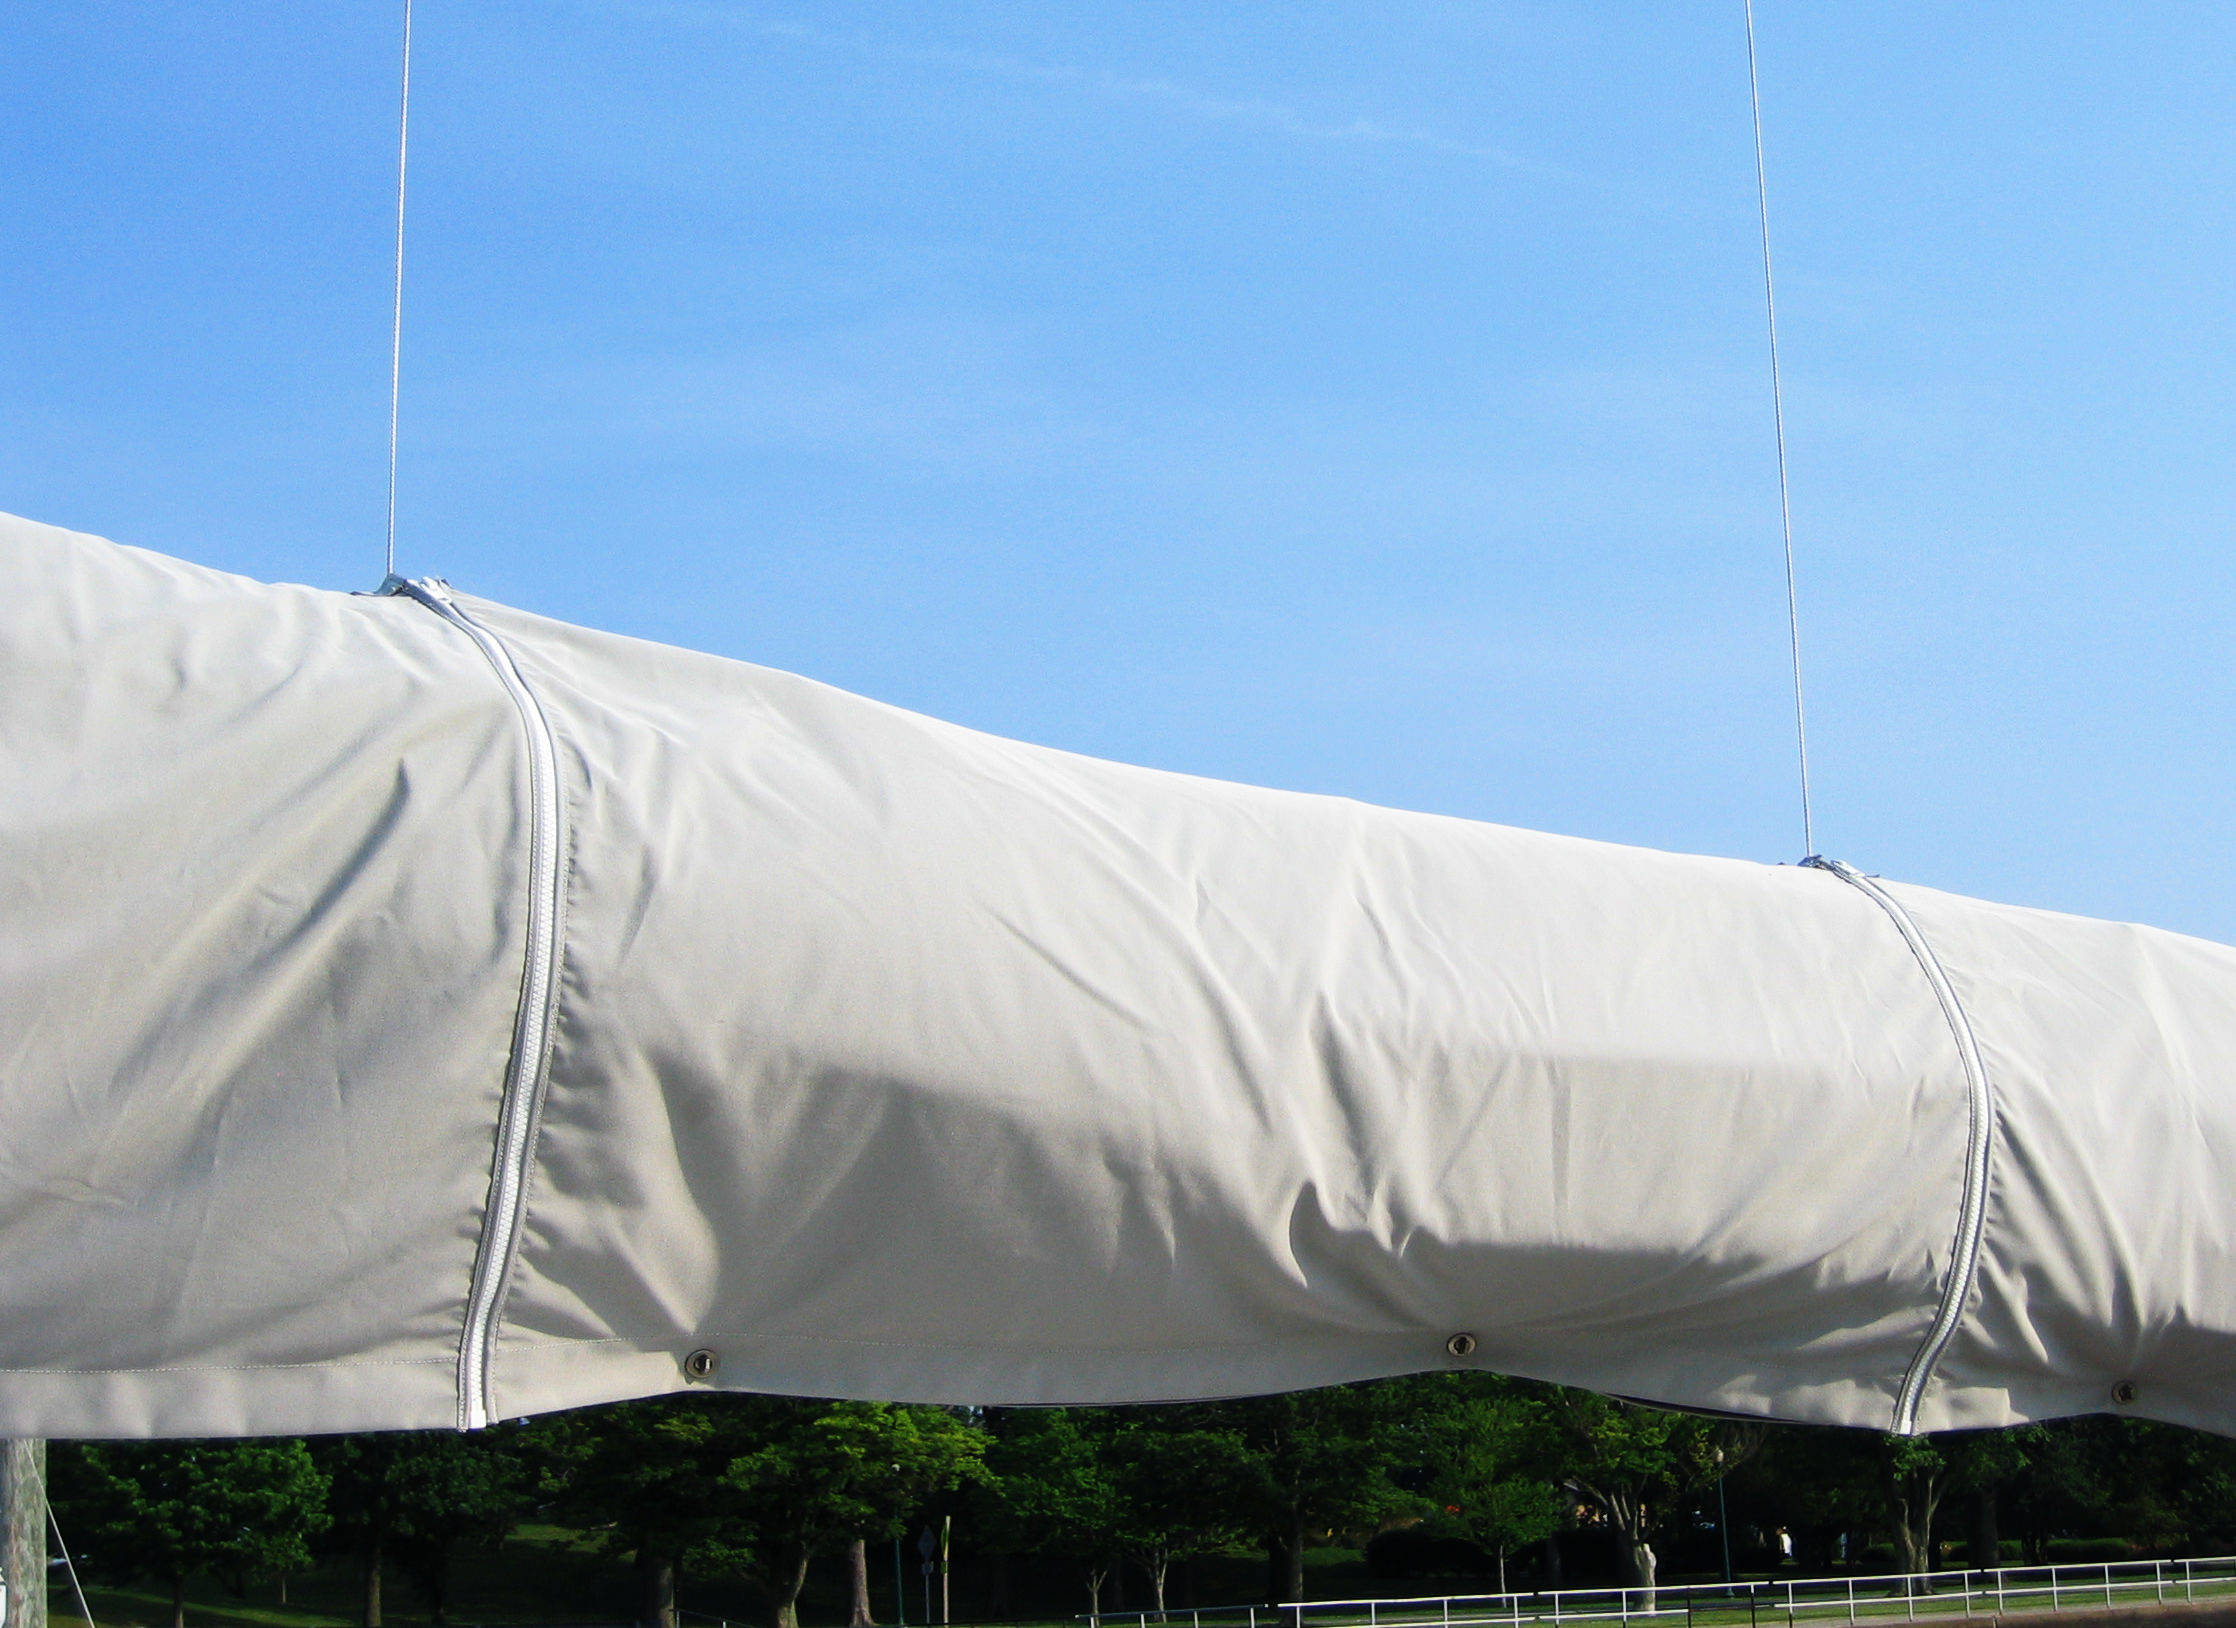 A close up of the carefully placed zipper slits in a mainsail cover.